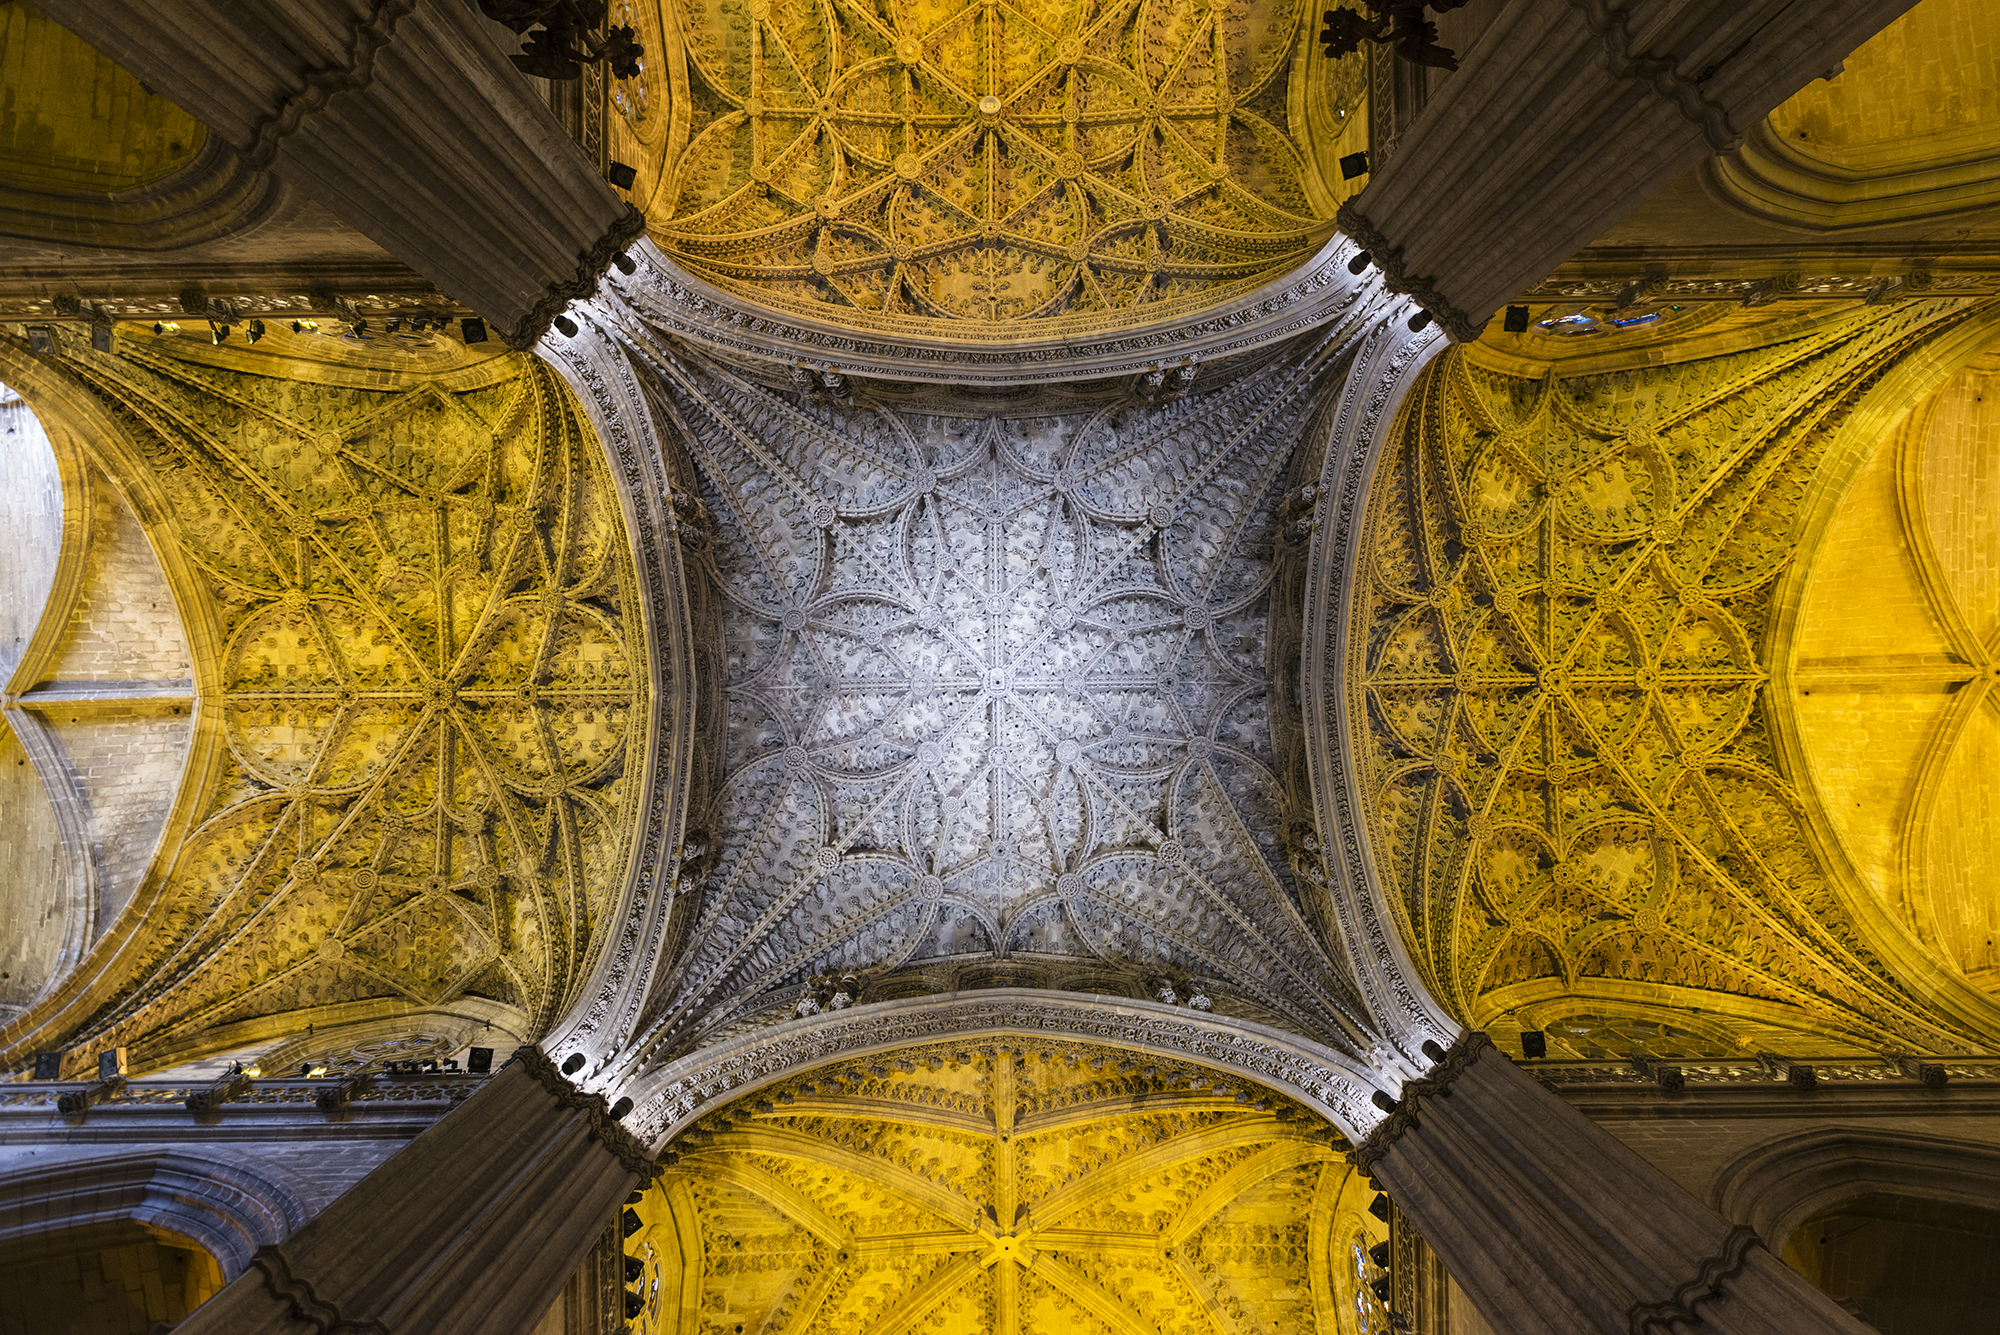 Detail of the ceiling inside Seville's Cathedral